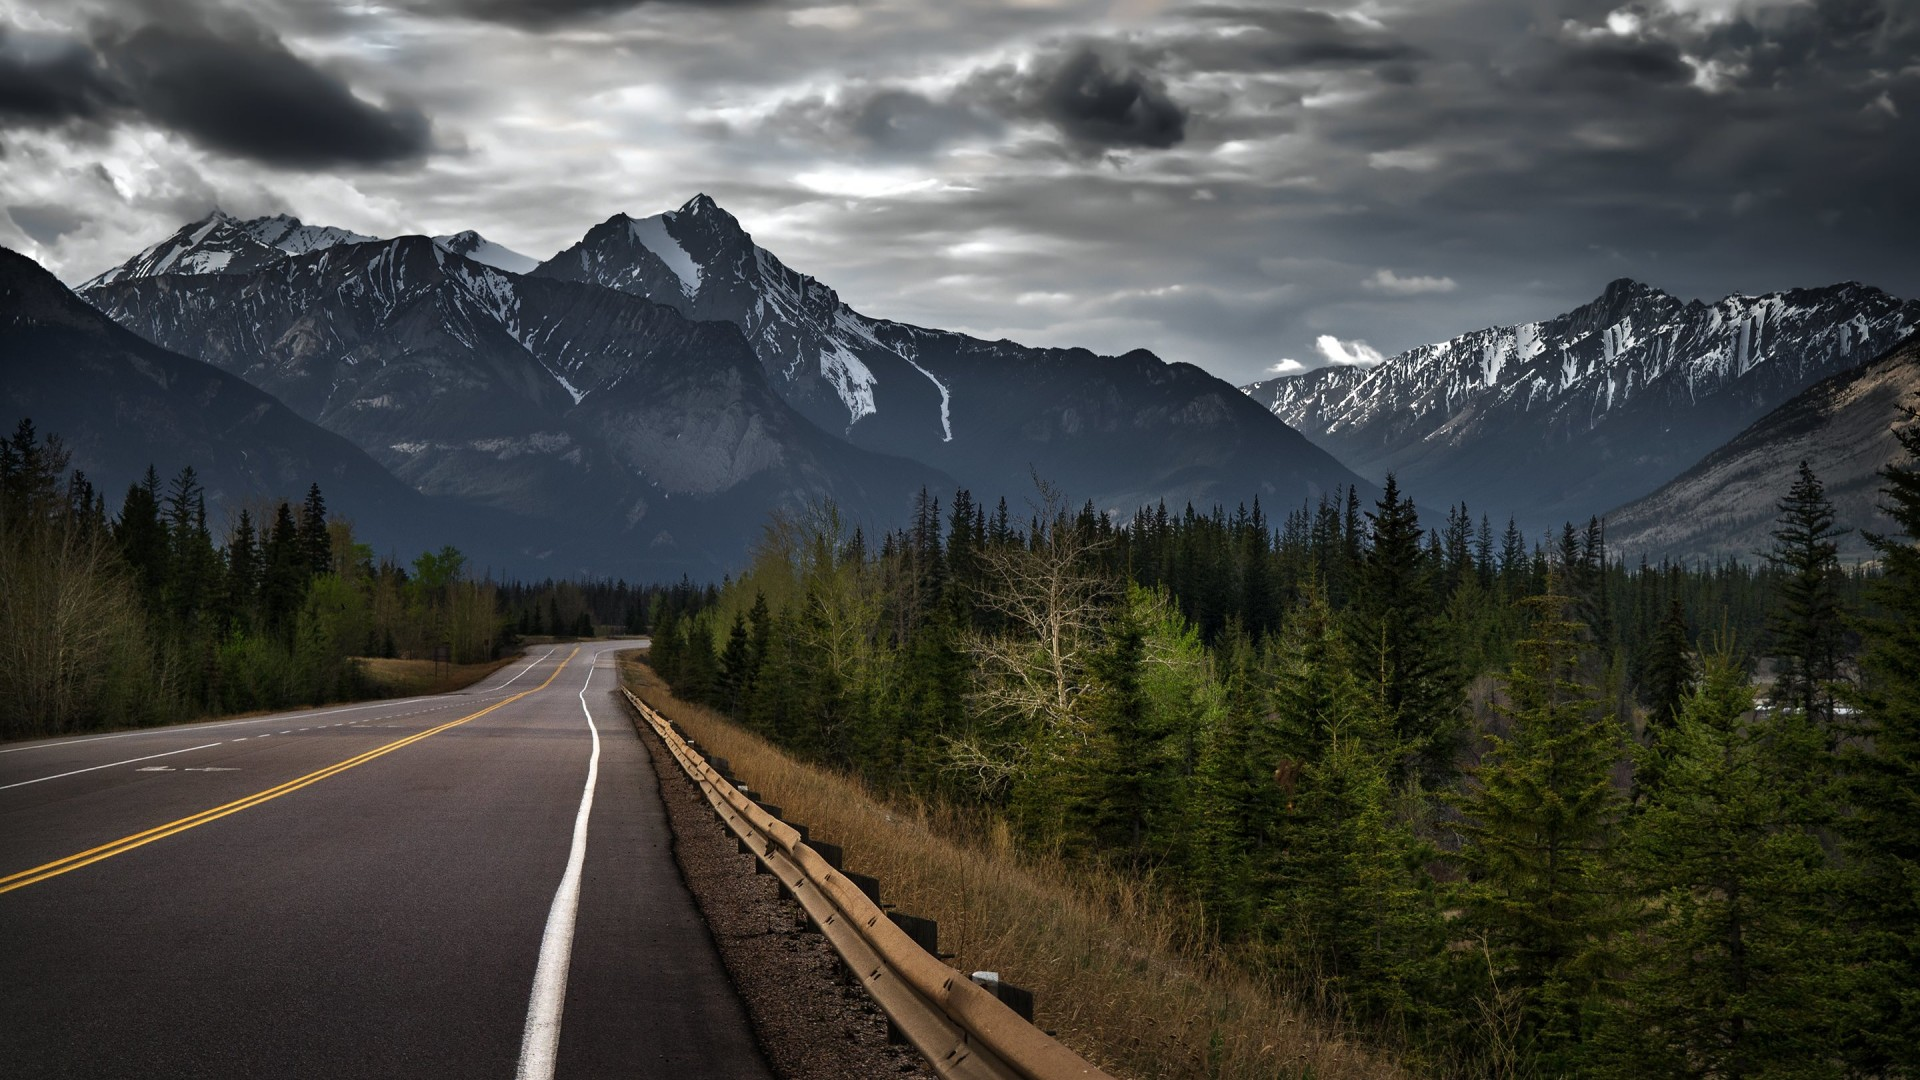 Road trip on a stormy day, Canada Wallpaper for Desktop 1920x1080